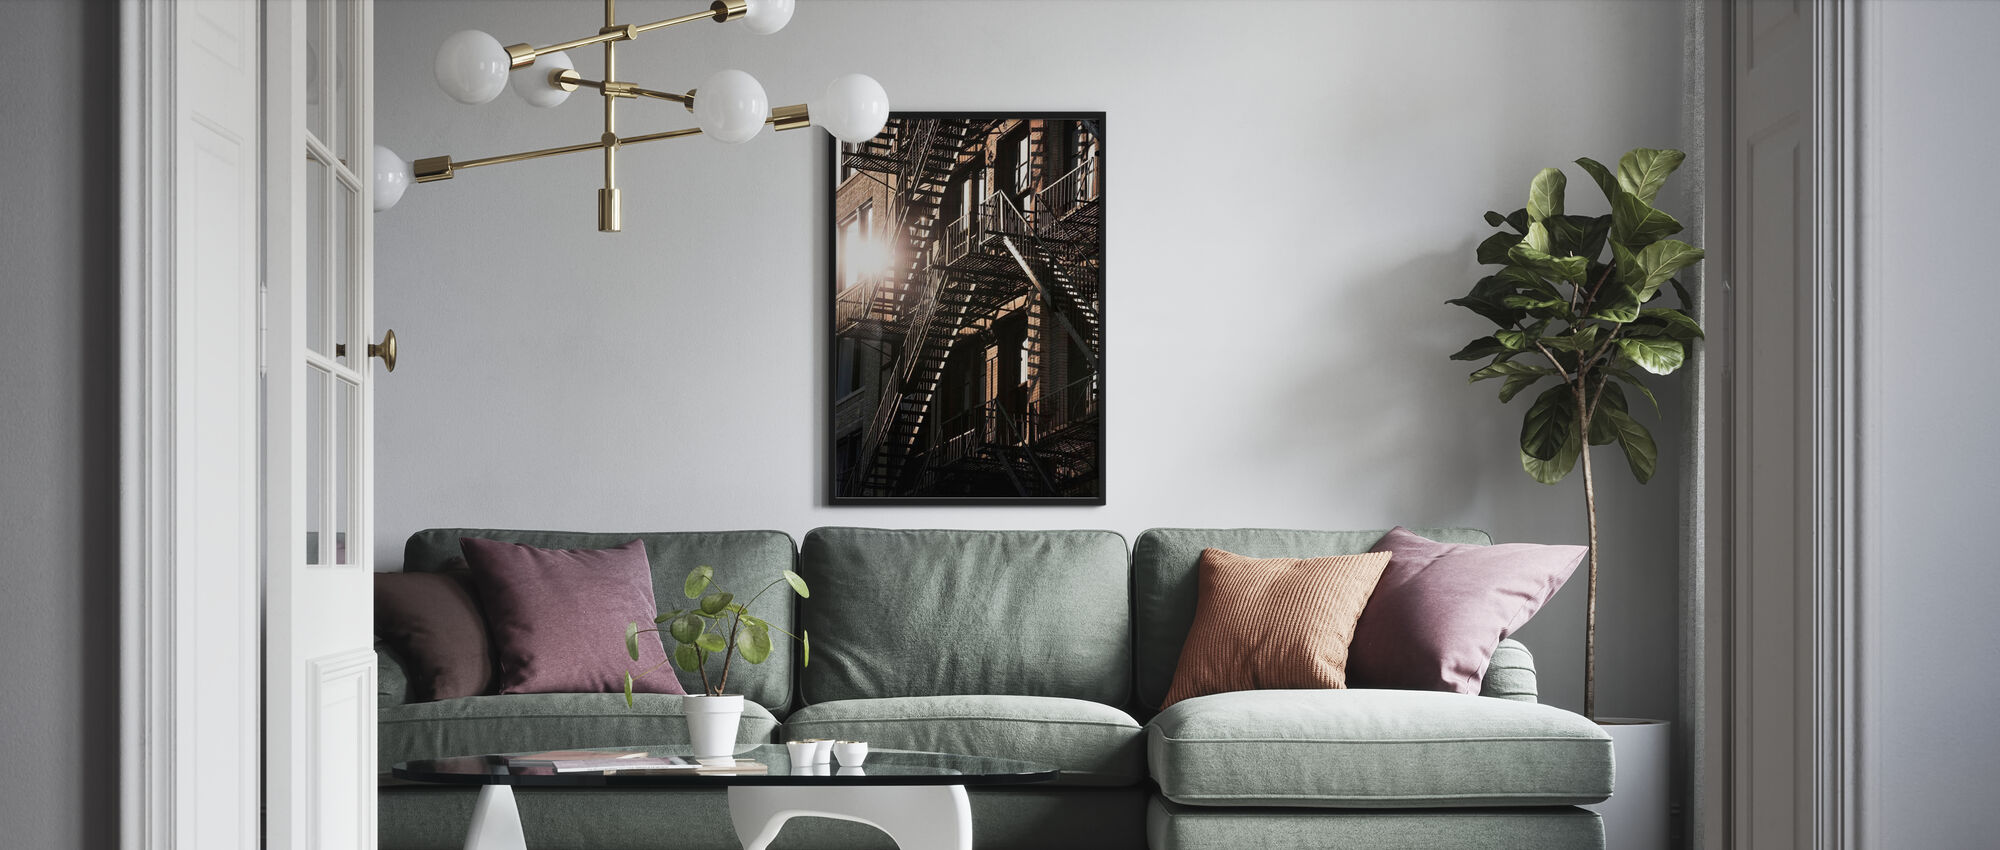 17th Street Fire Escapes - Poster - Living Room